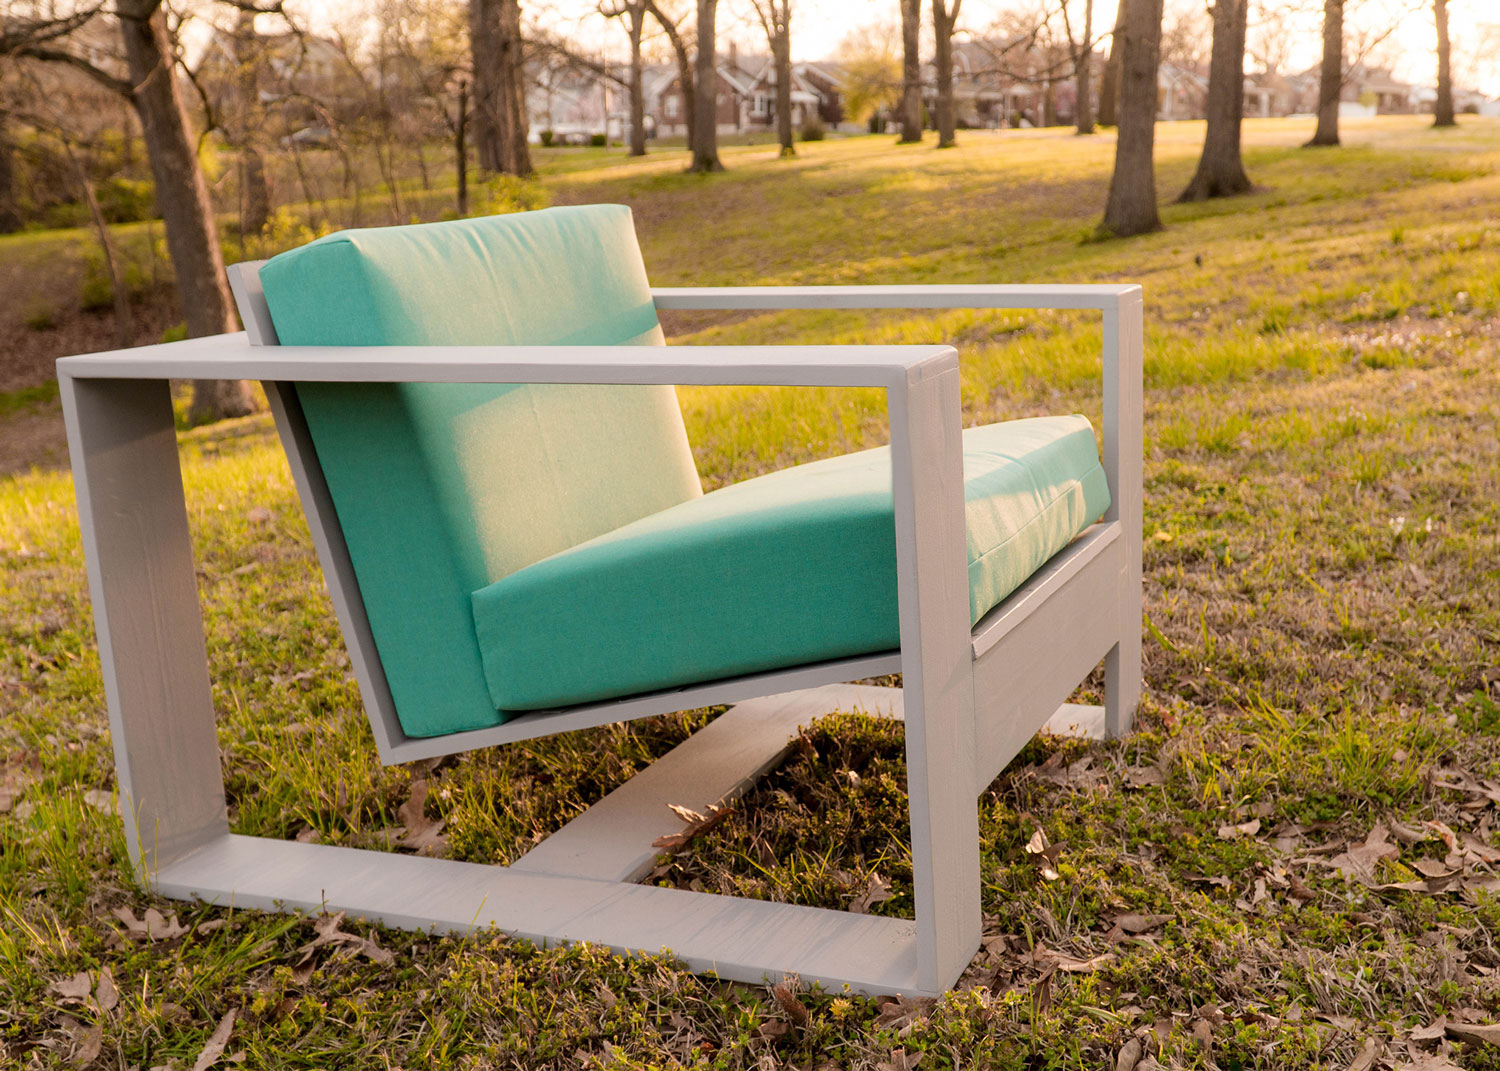 A Simple Modern Outdoor Lounge Chair Popular Woodworking Magazine